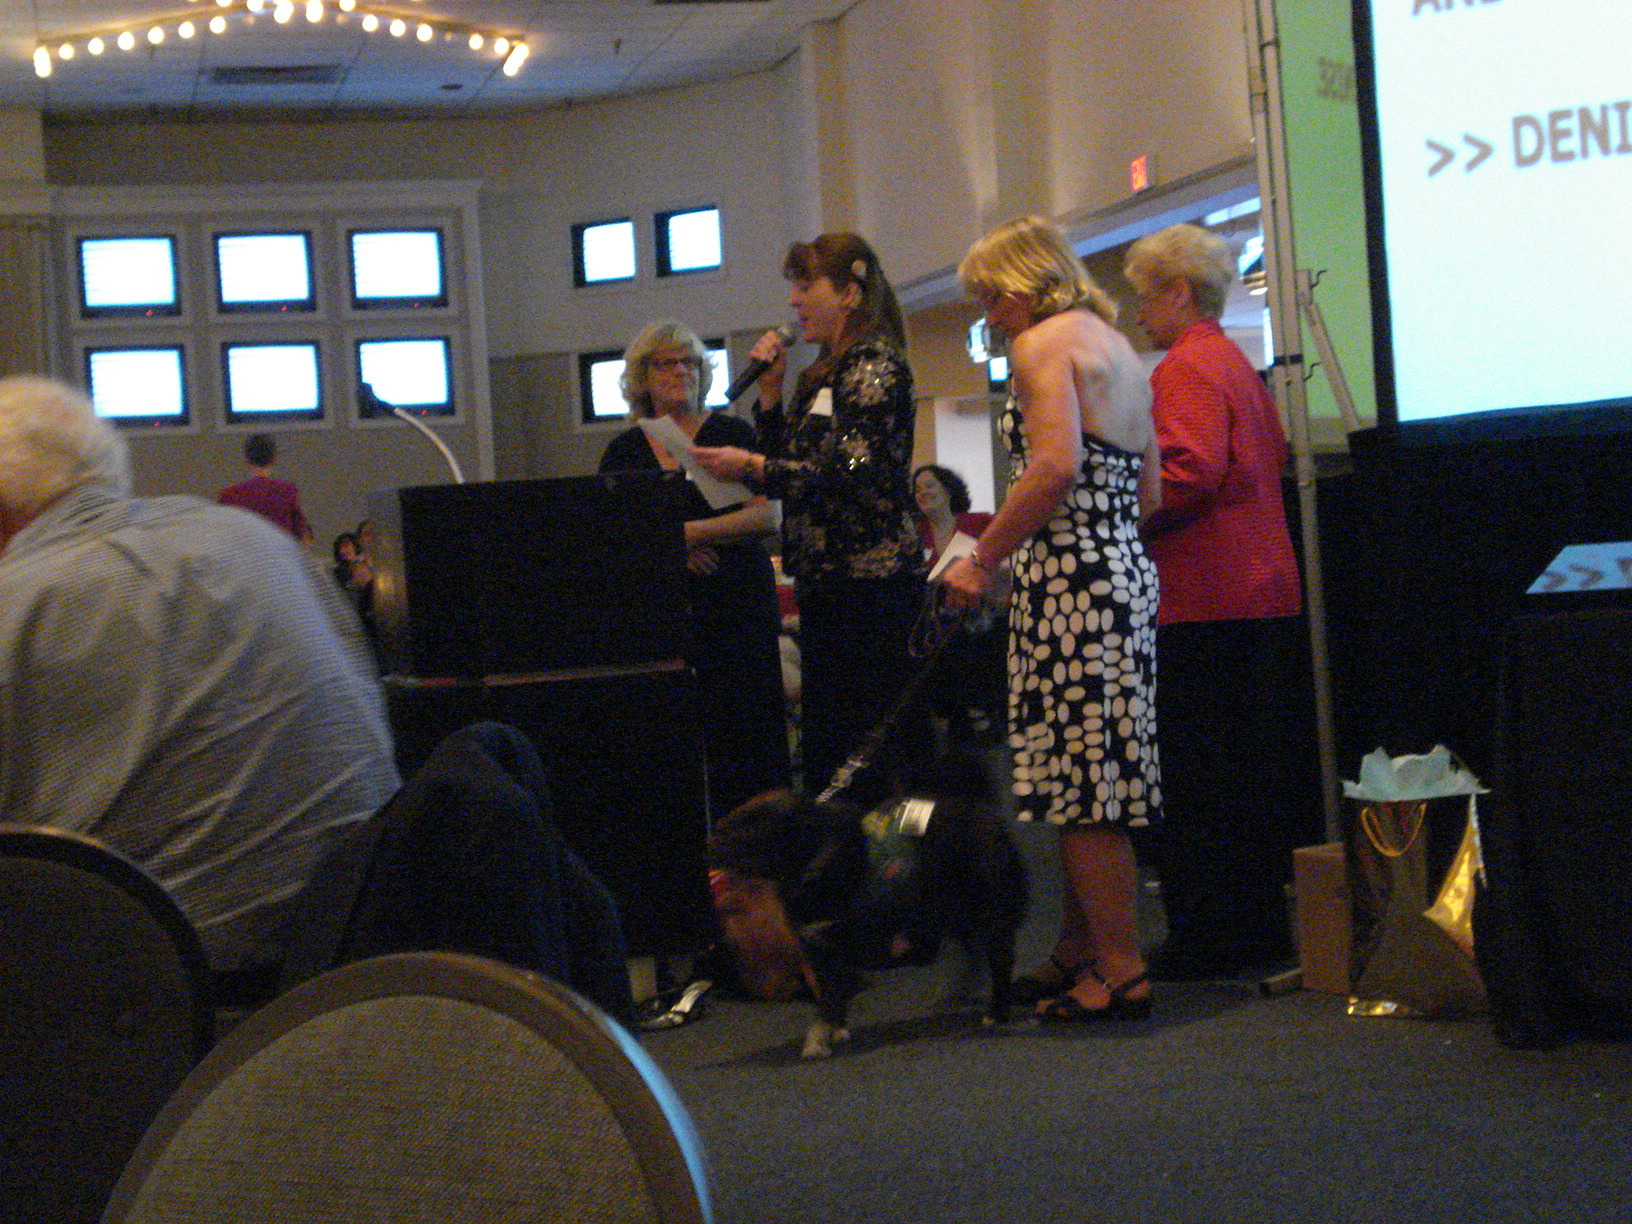 Denise gives a speech w/ Chloe in a down/stay. Puppy Raiser L, Trainer at R of Denise